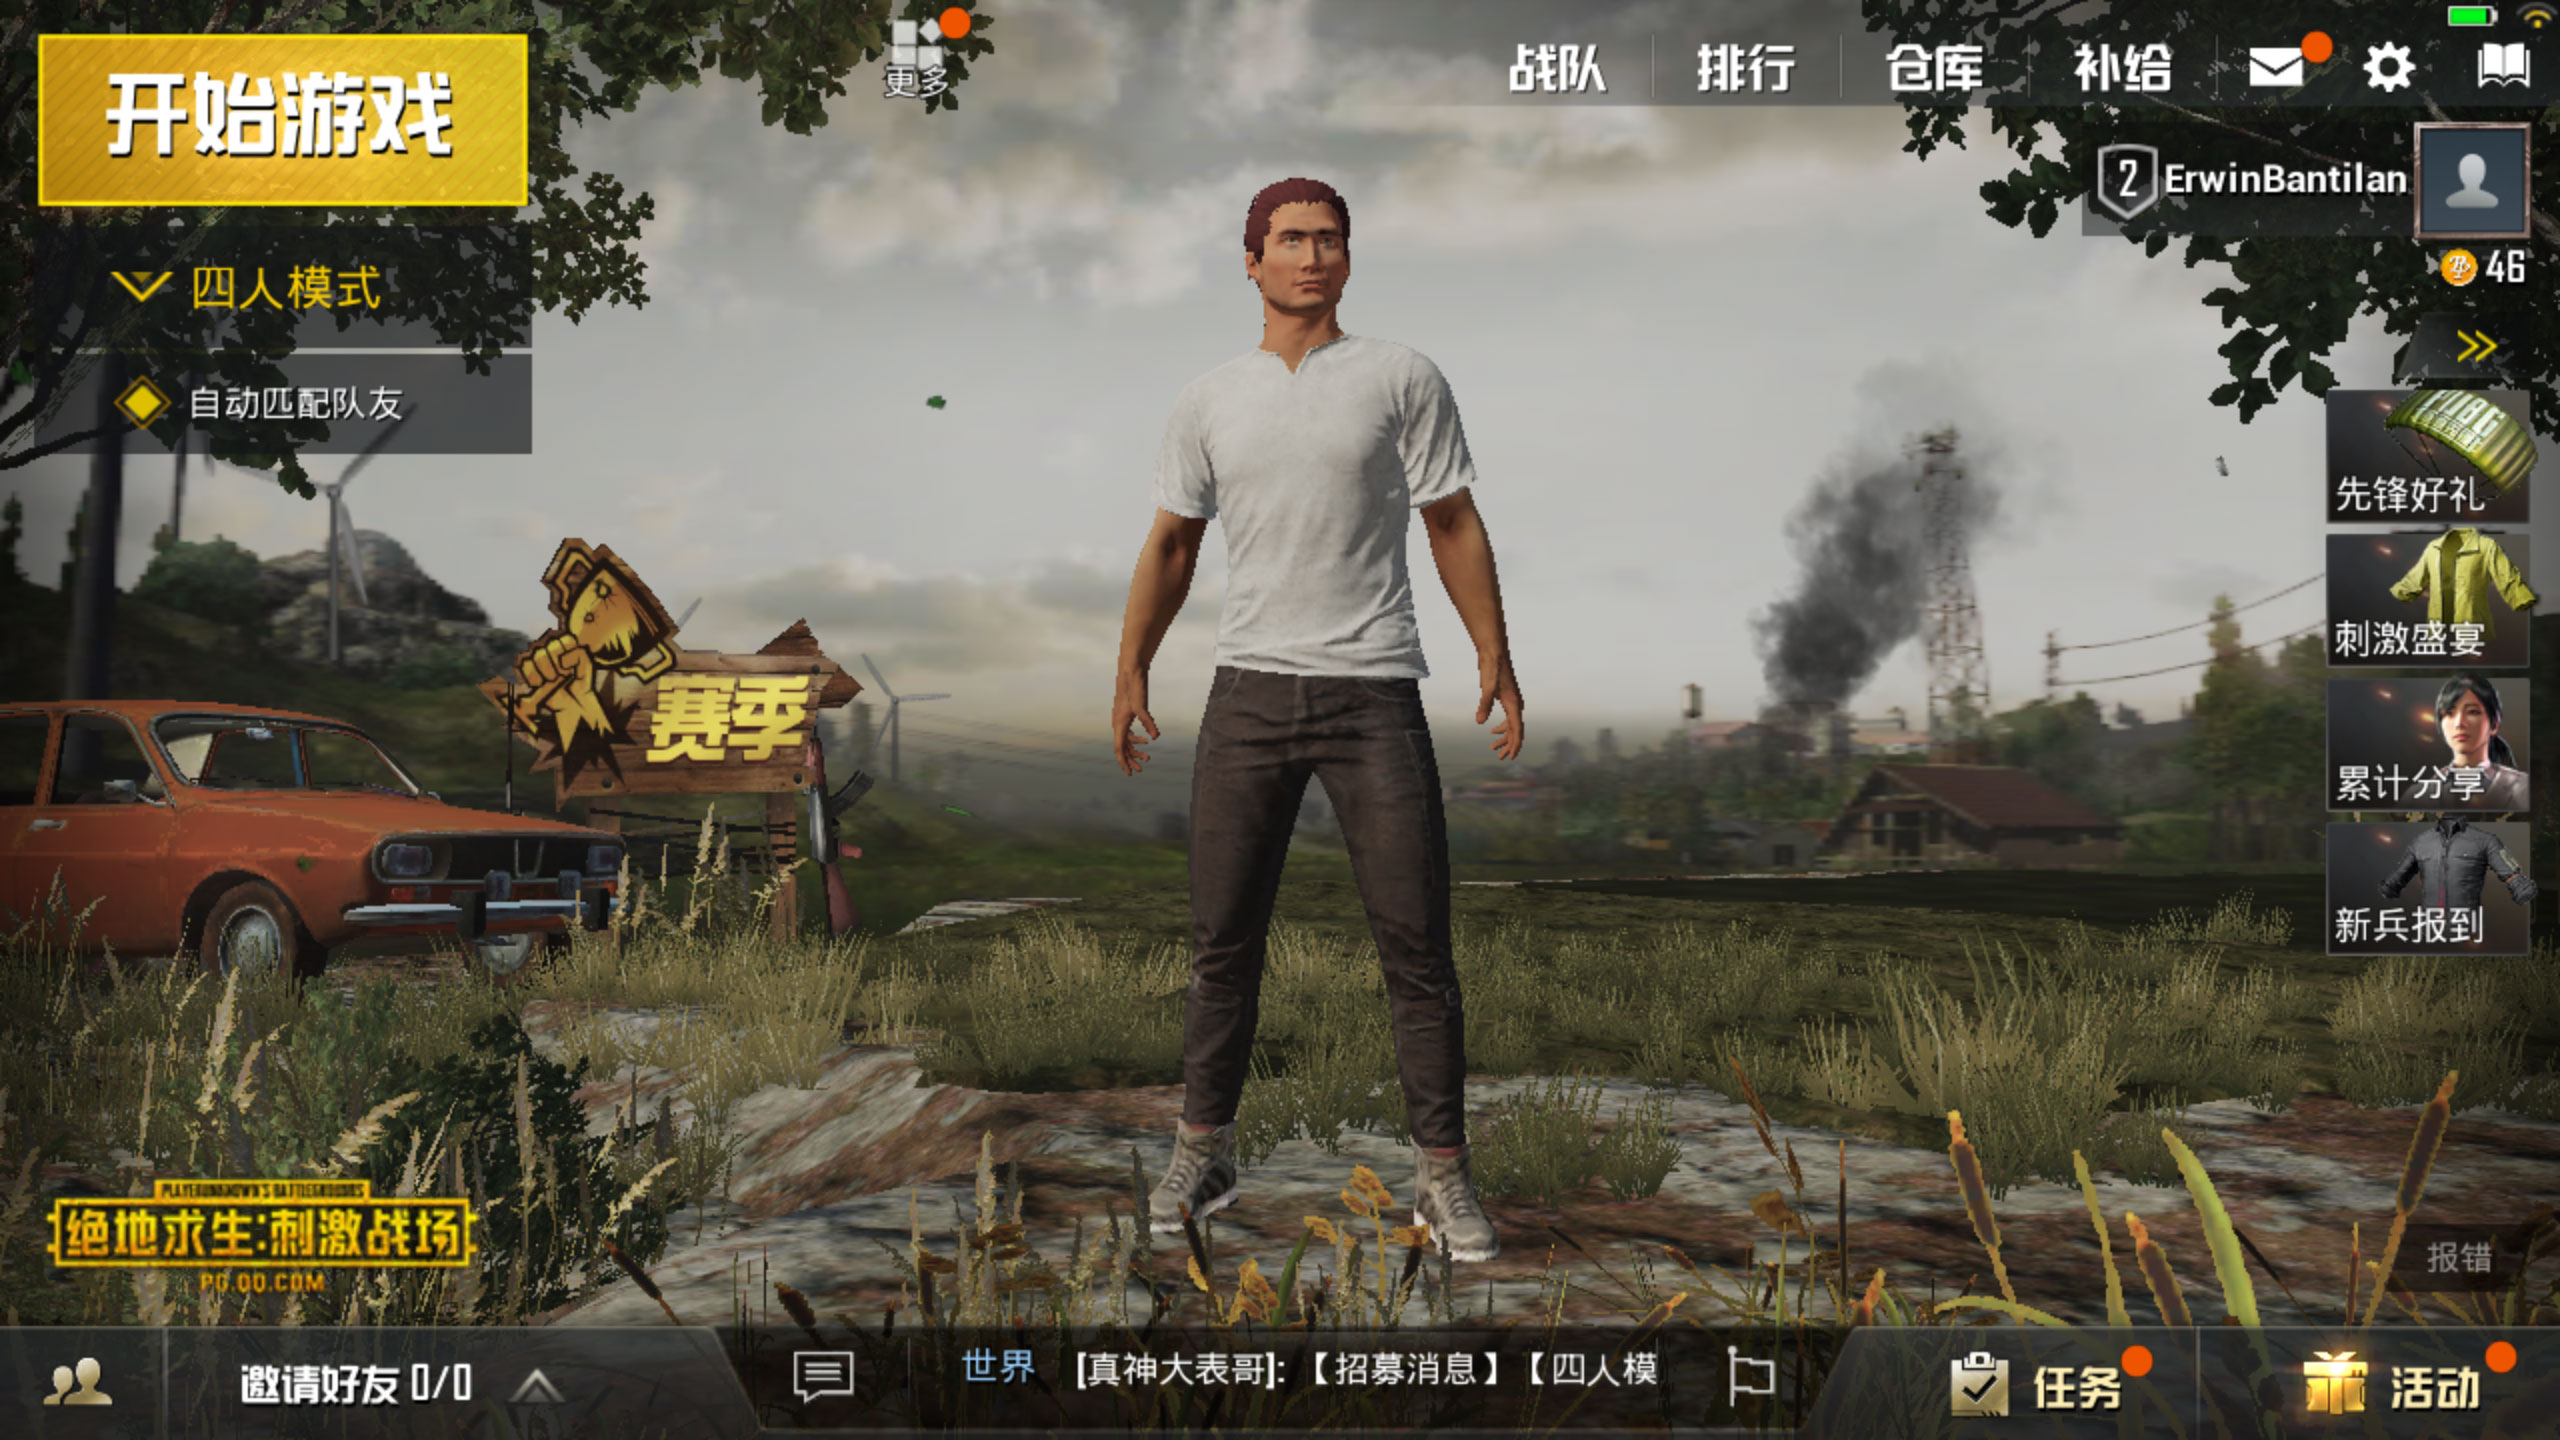 How To Download Pubg Mobile Open Beta In Android And Ios Gamingph Com